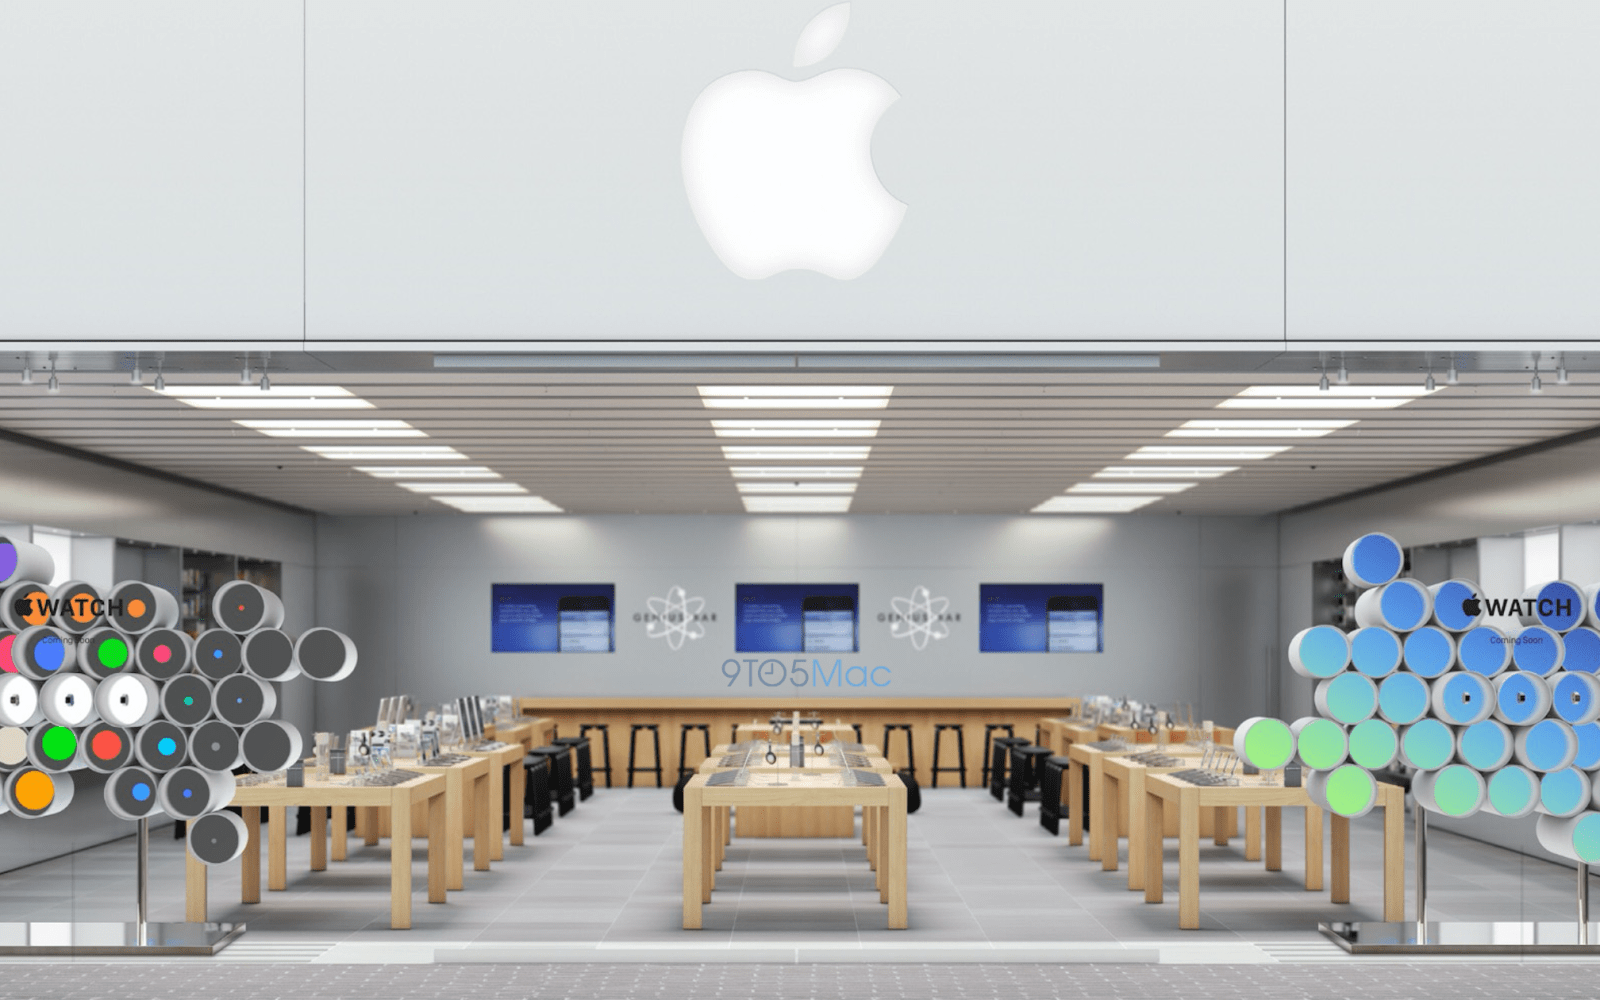 New Apple Store front display for Apple Watch, new gold model details revealed